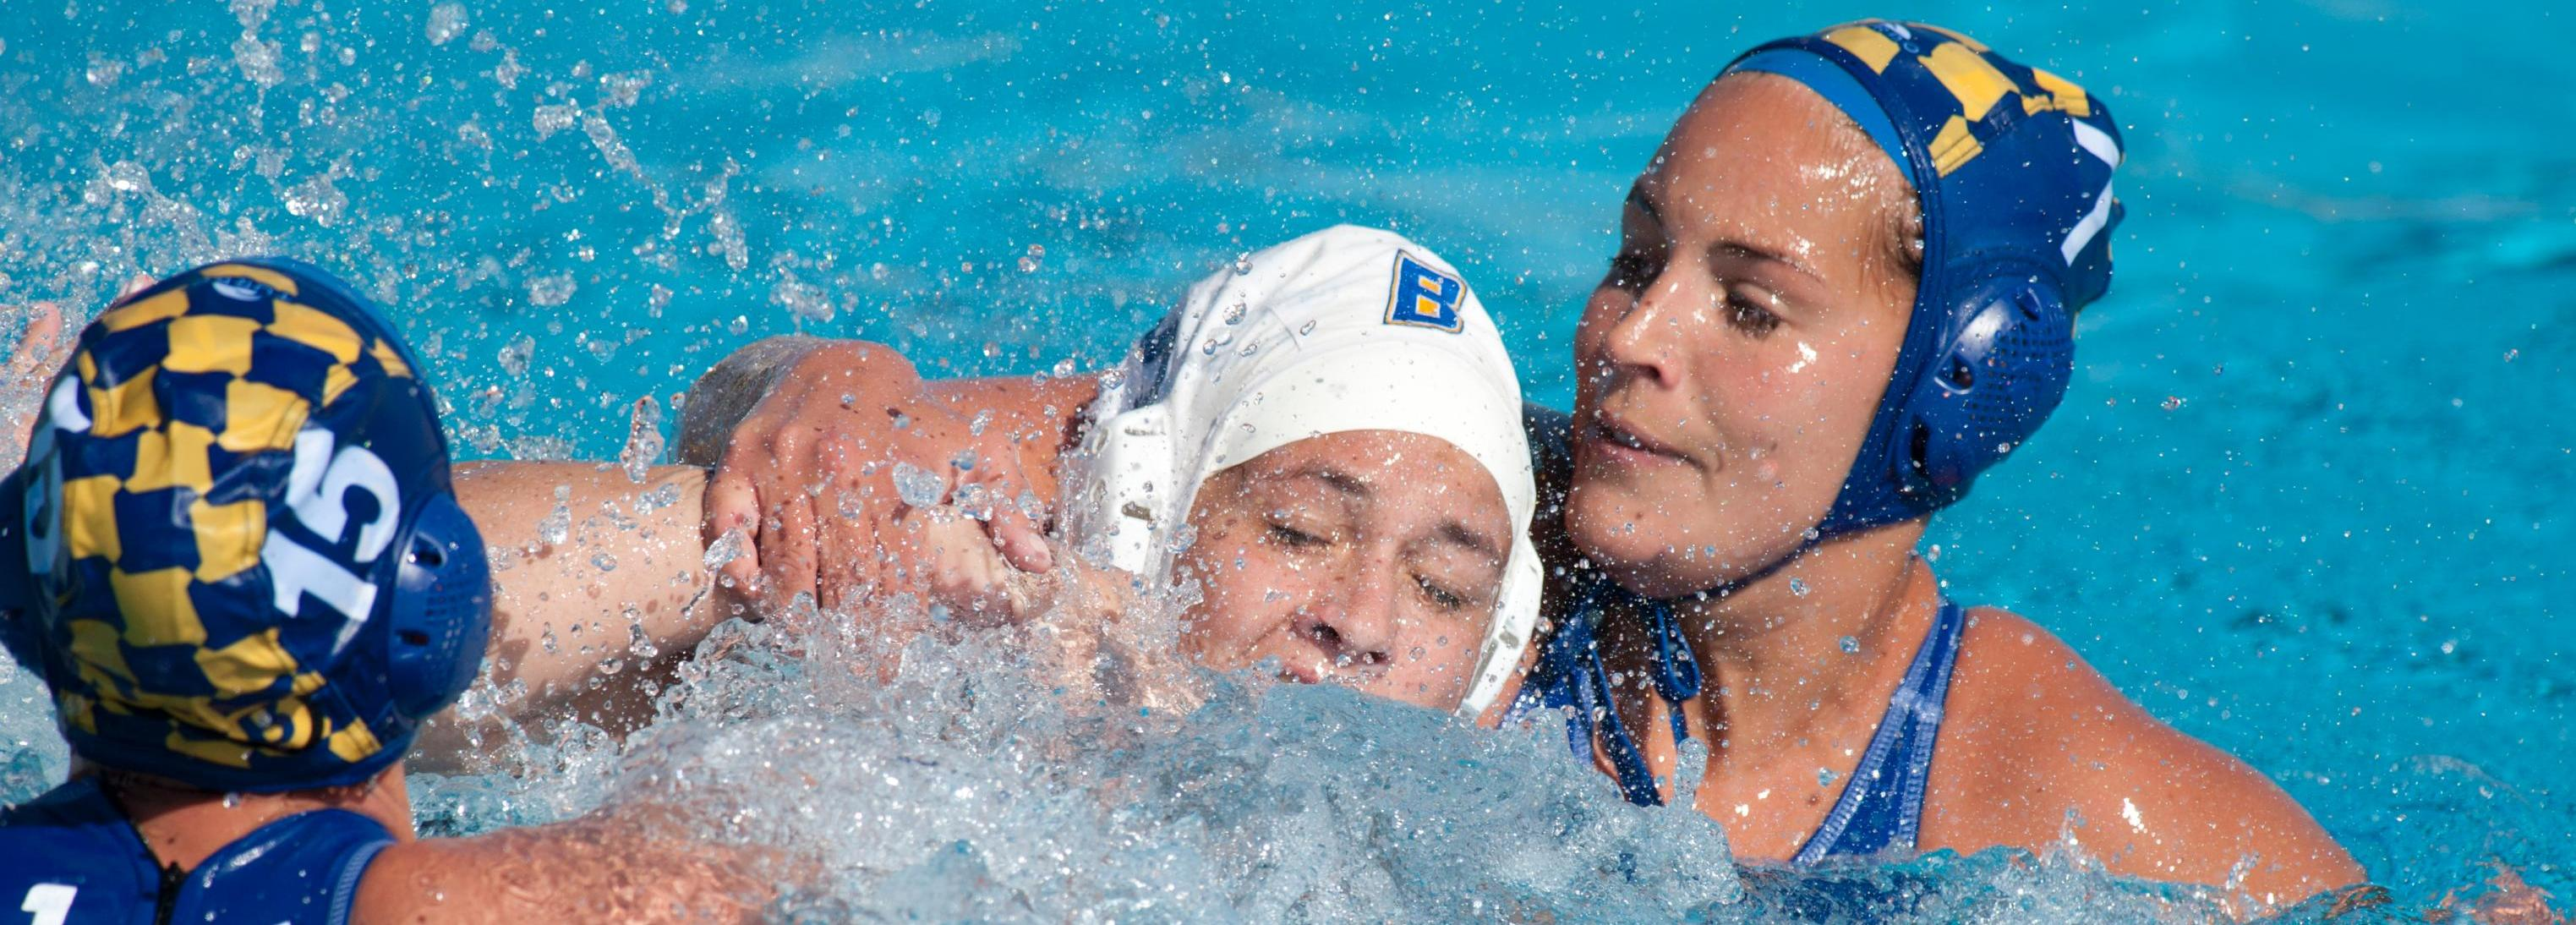 Claire Buchanan Named Golden 1/UCSBgauchos.com Athlete of the Week